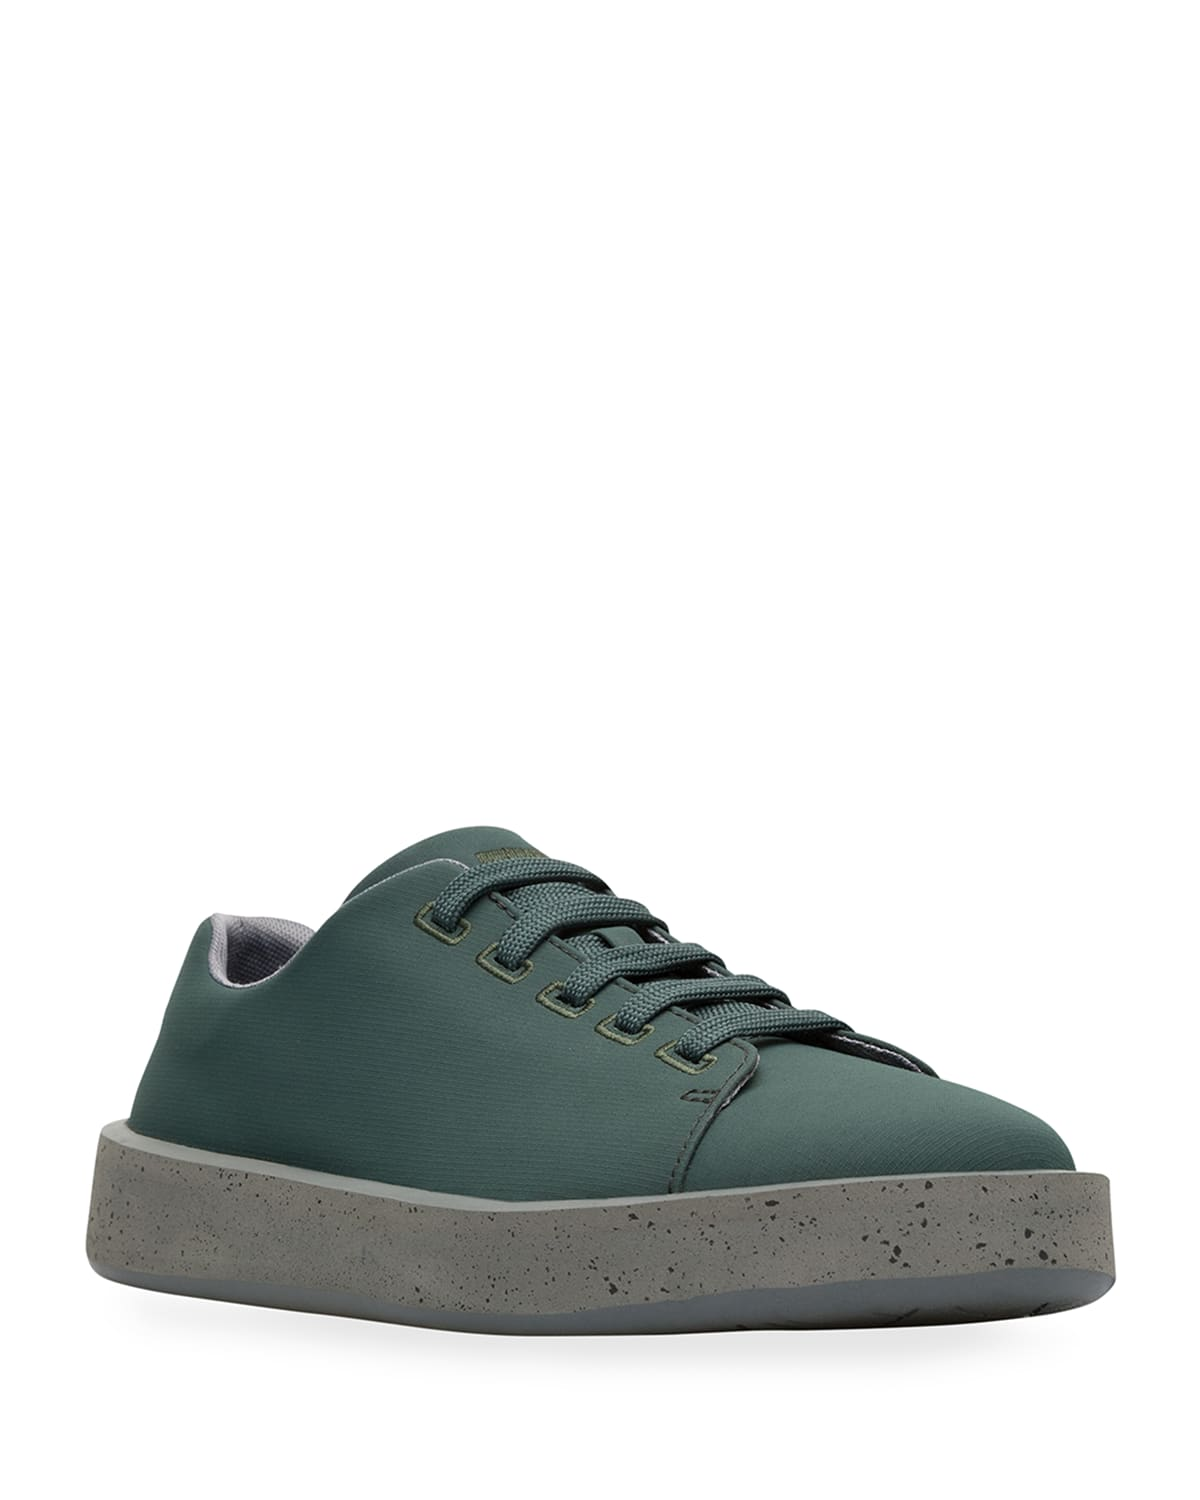 Men's Courb Nylon Speckled Low-Top Sneakers